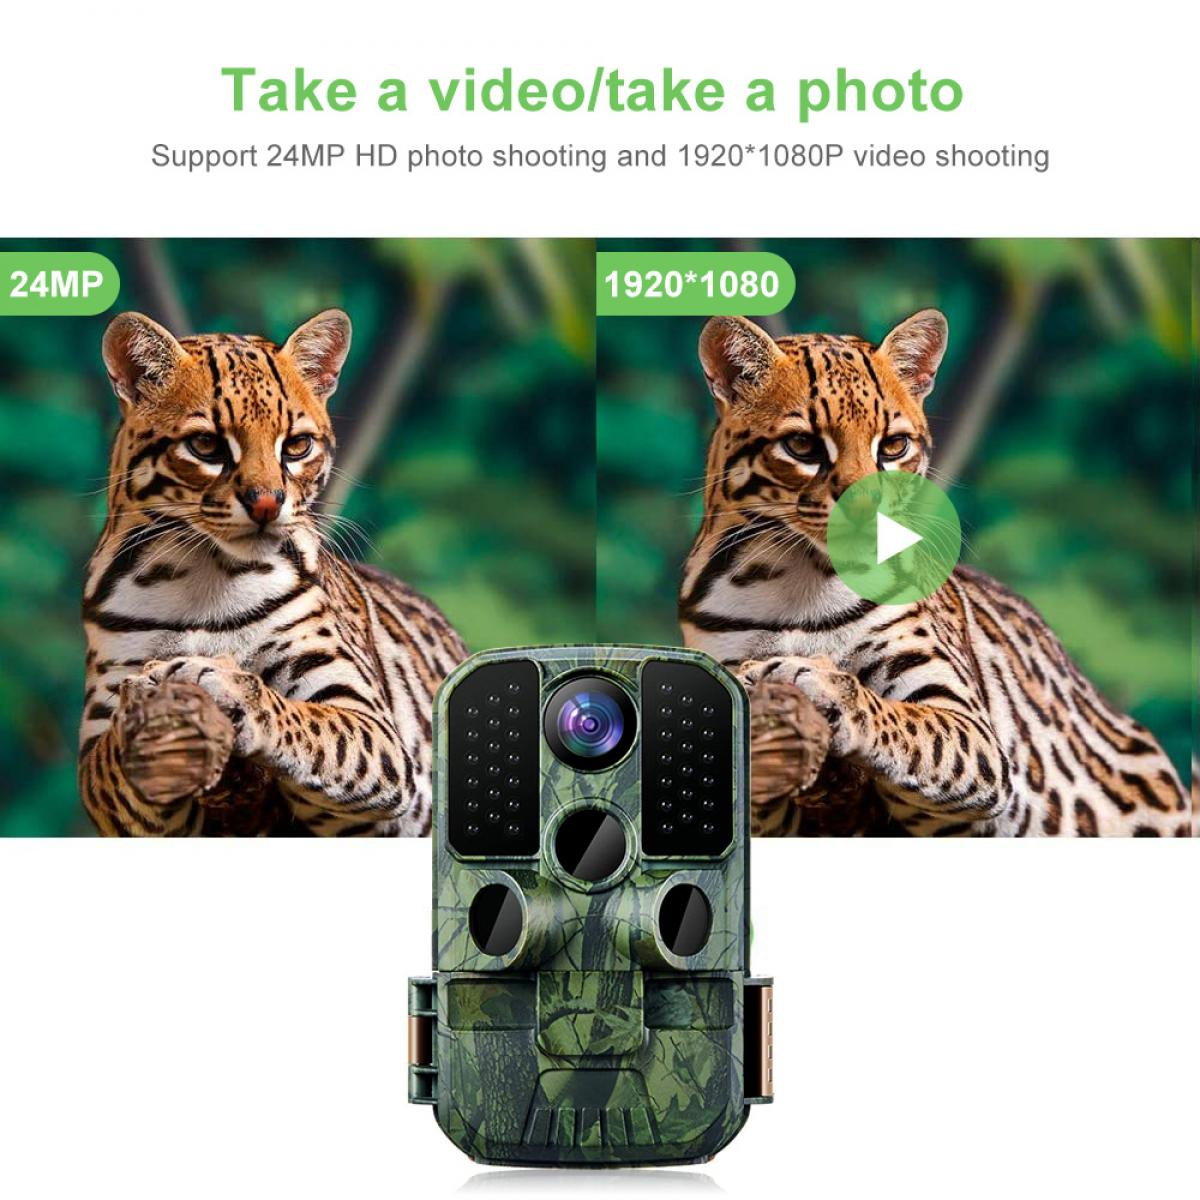 K&F KF-501F Trail Game Camera 24MP 1296P Night Vision Cámara de exploración de caza impermeable para monitoreo de vida silvestre